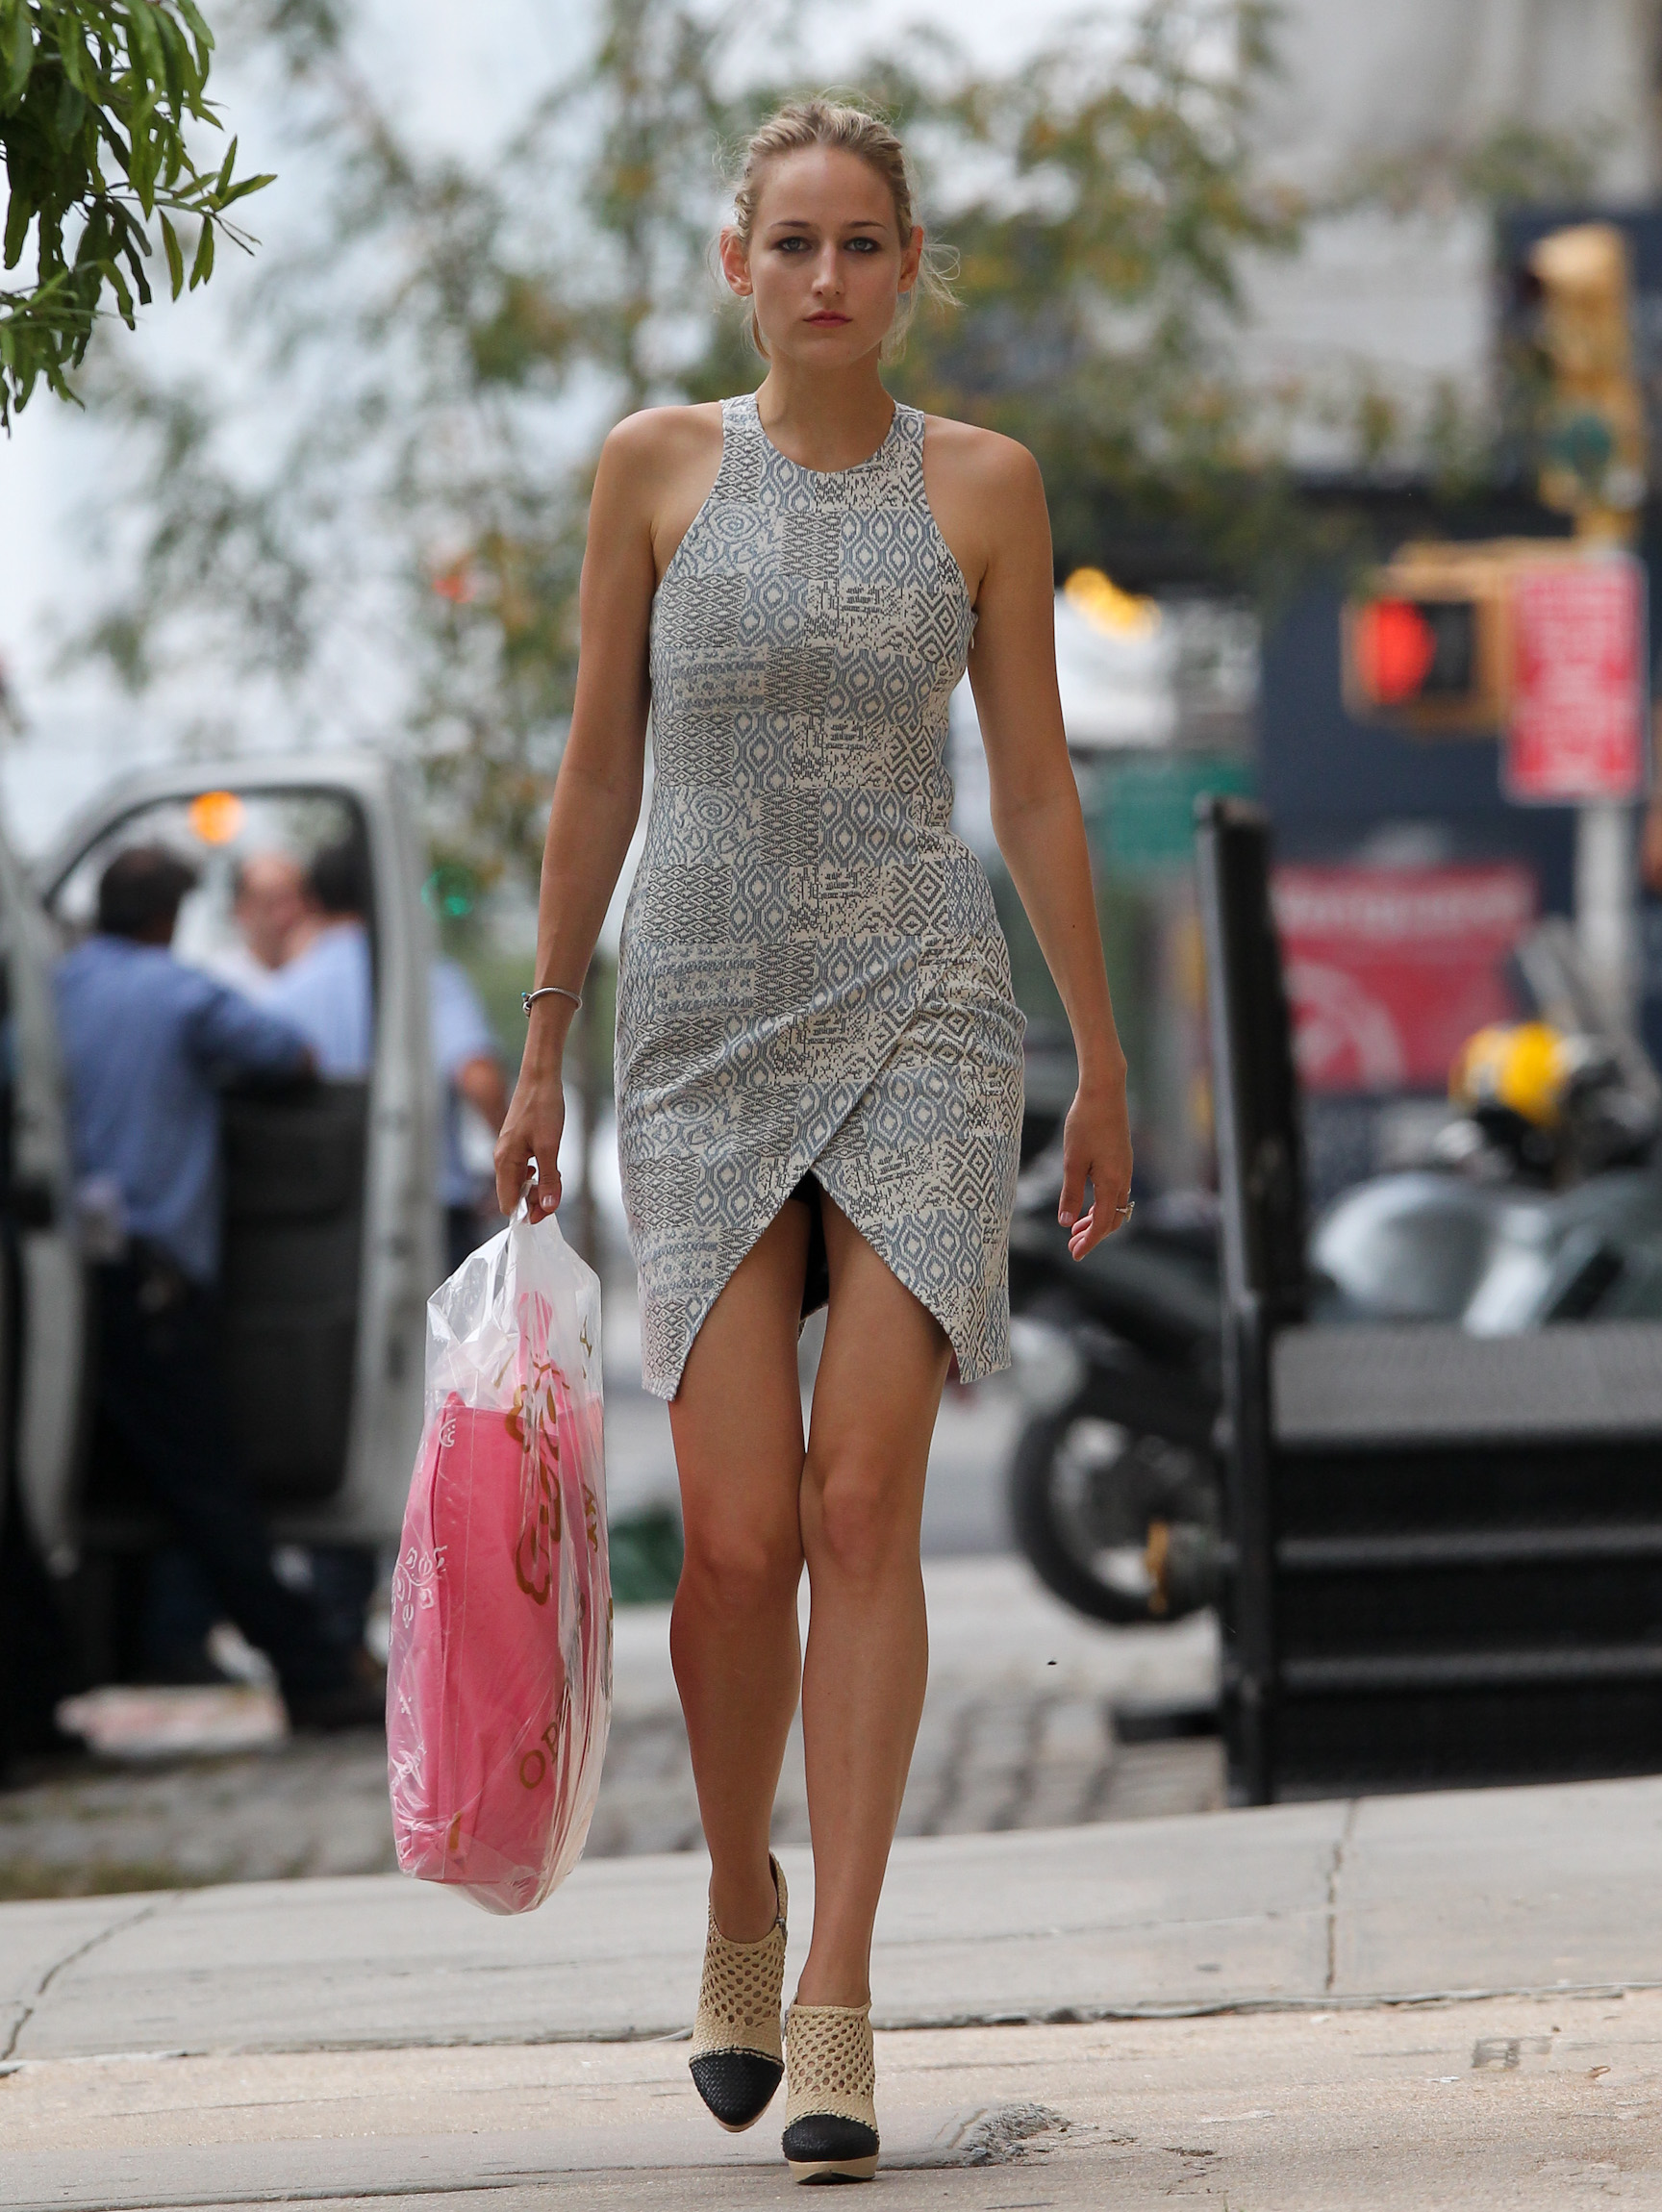 leelee sobieski shopping candids in nyc 03 gotceleb. Black Bedroom Furniture Sets. Home Design Ideas